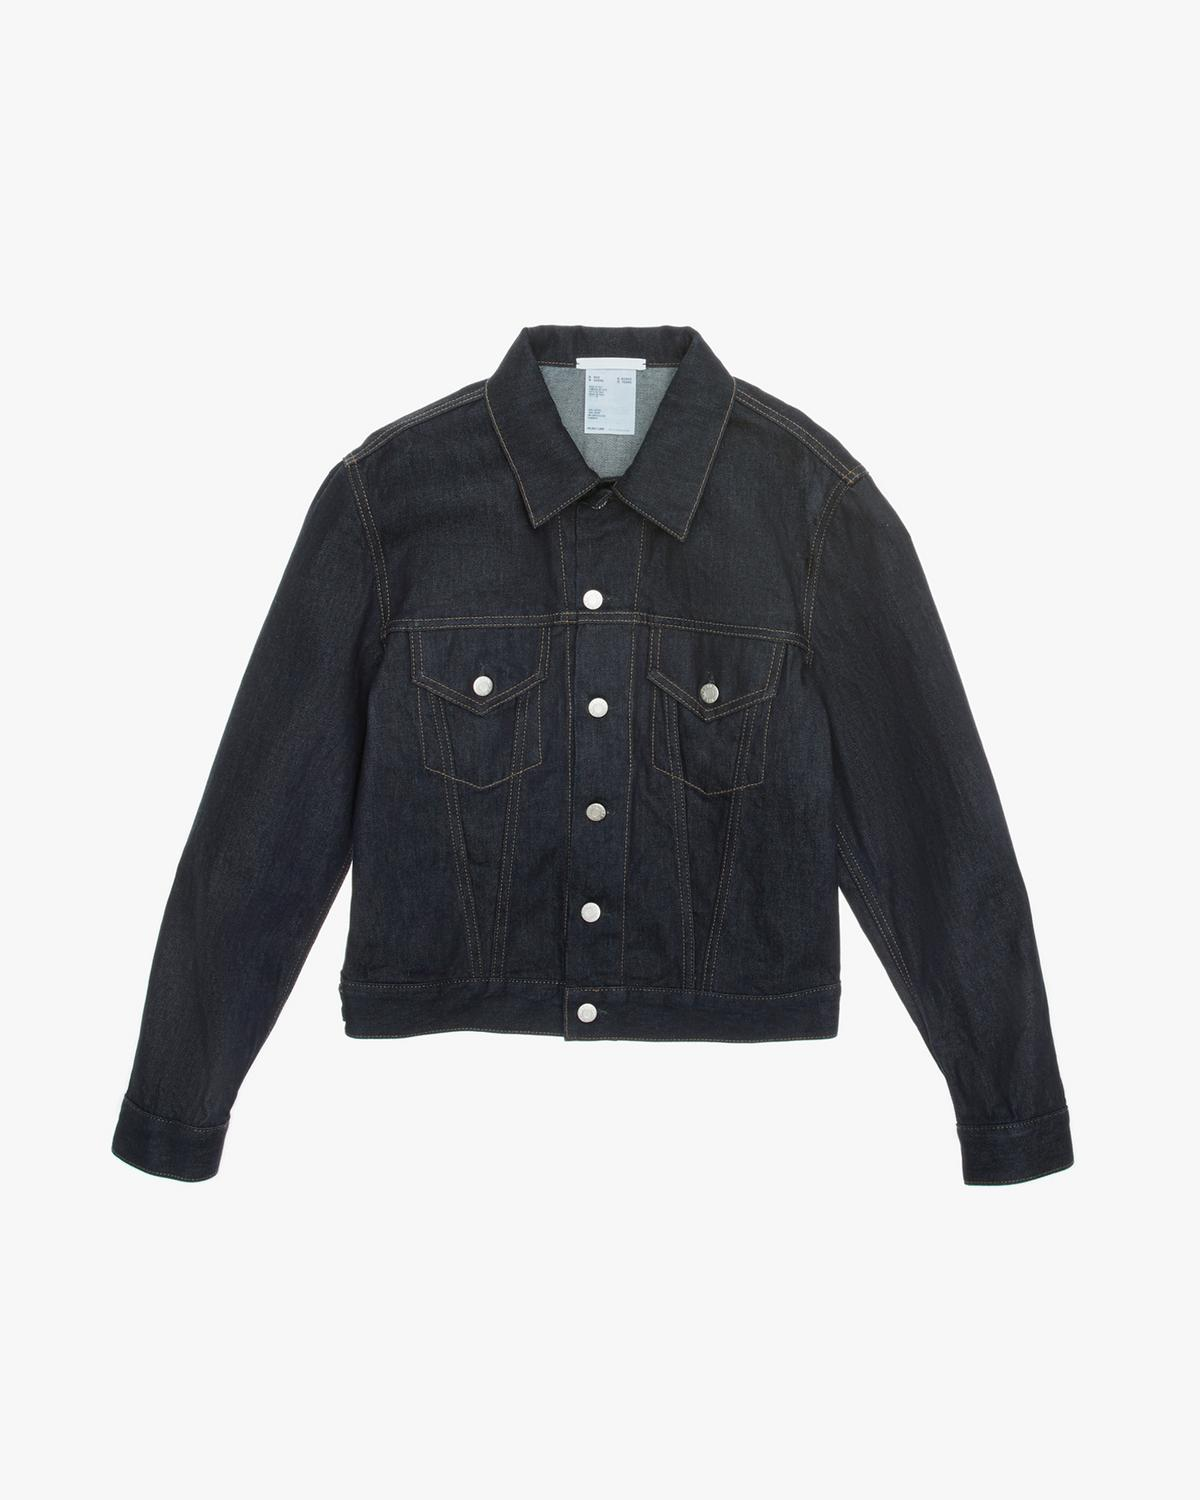 Masc Trucker Jacket